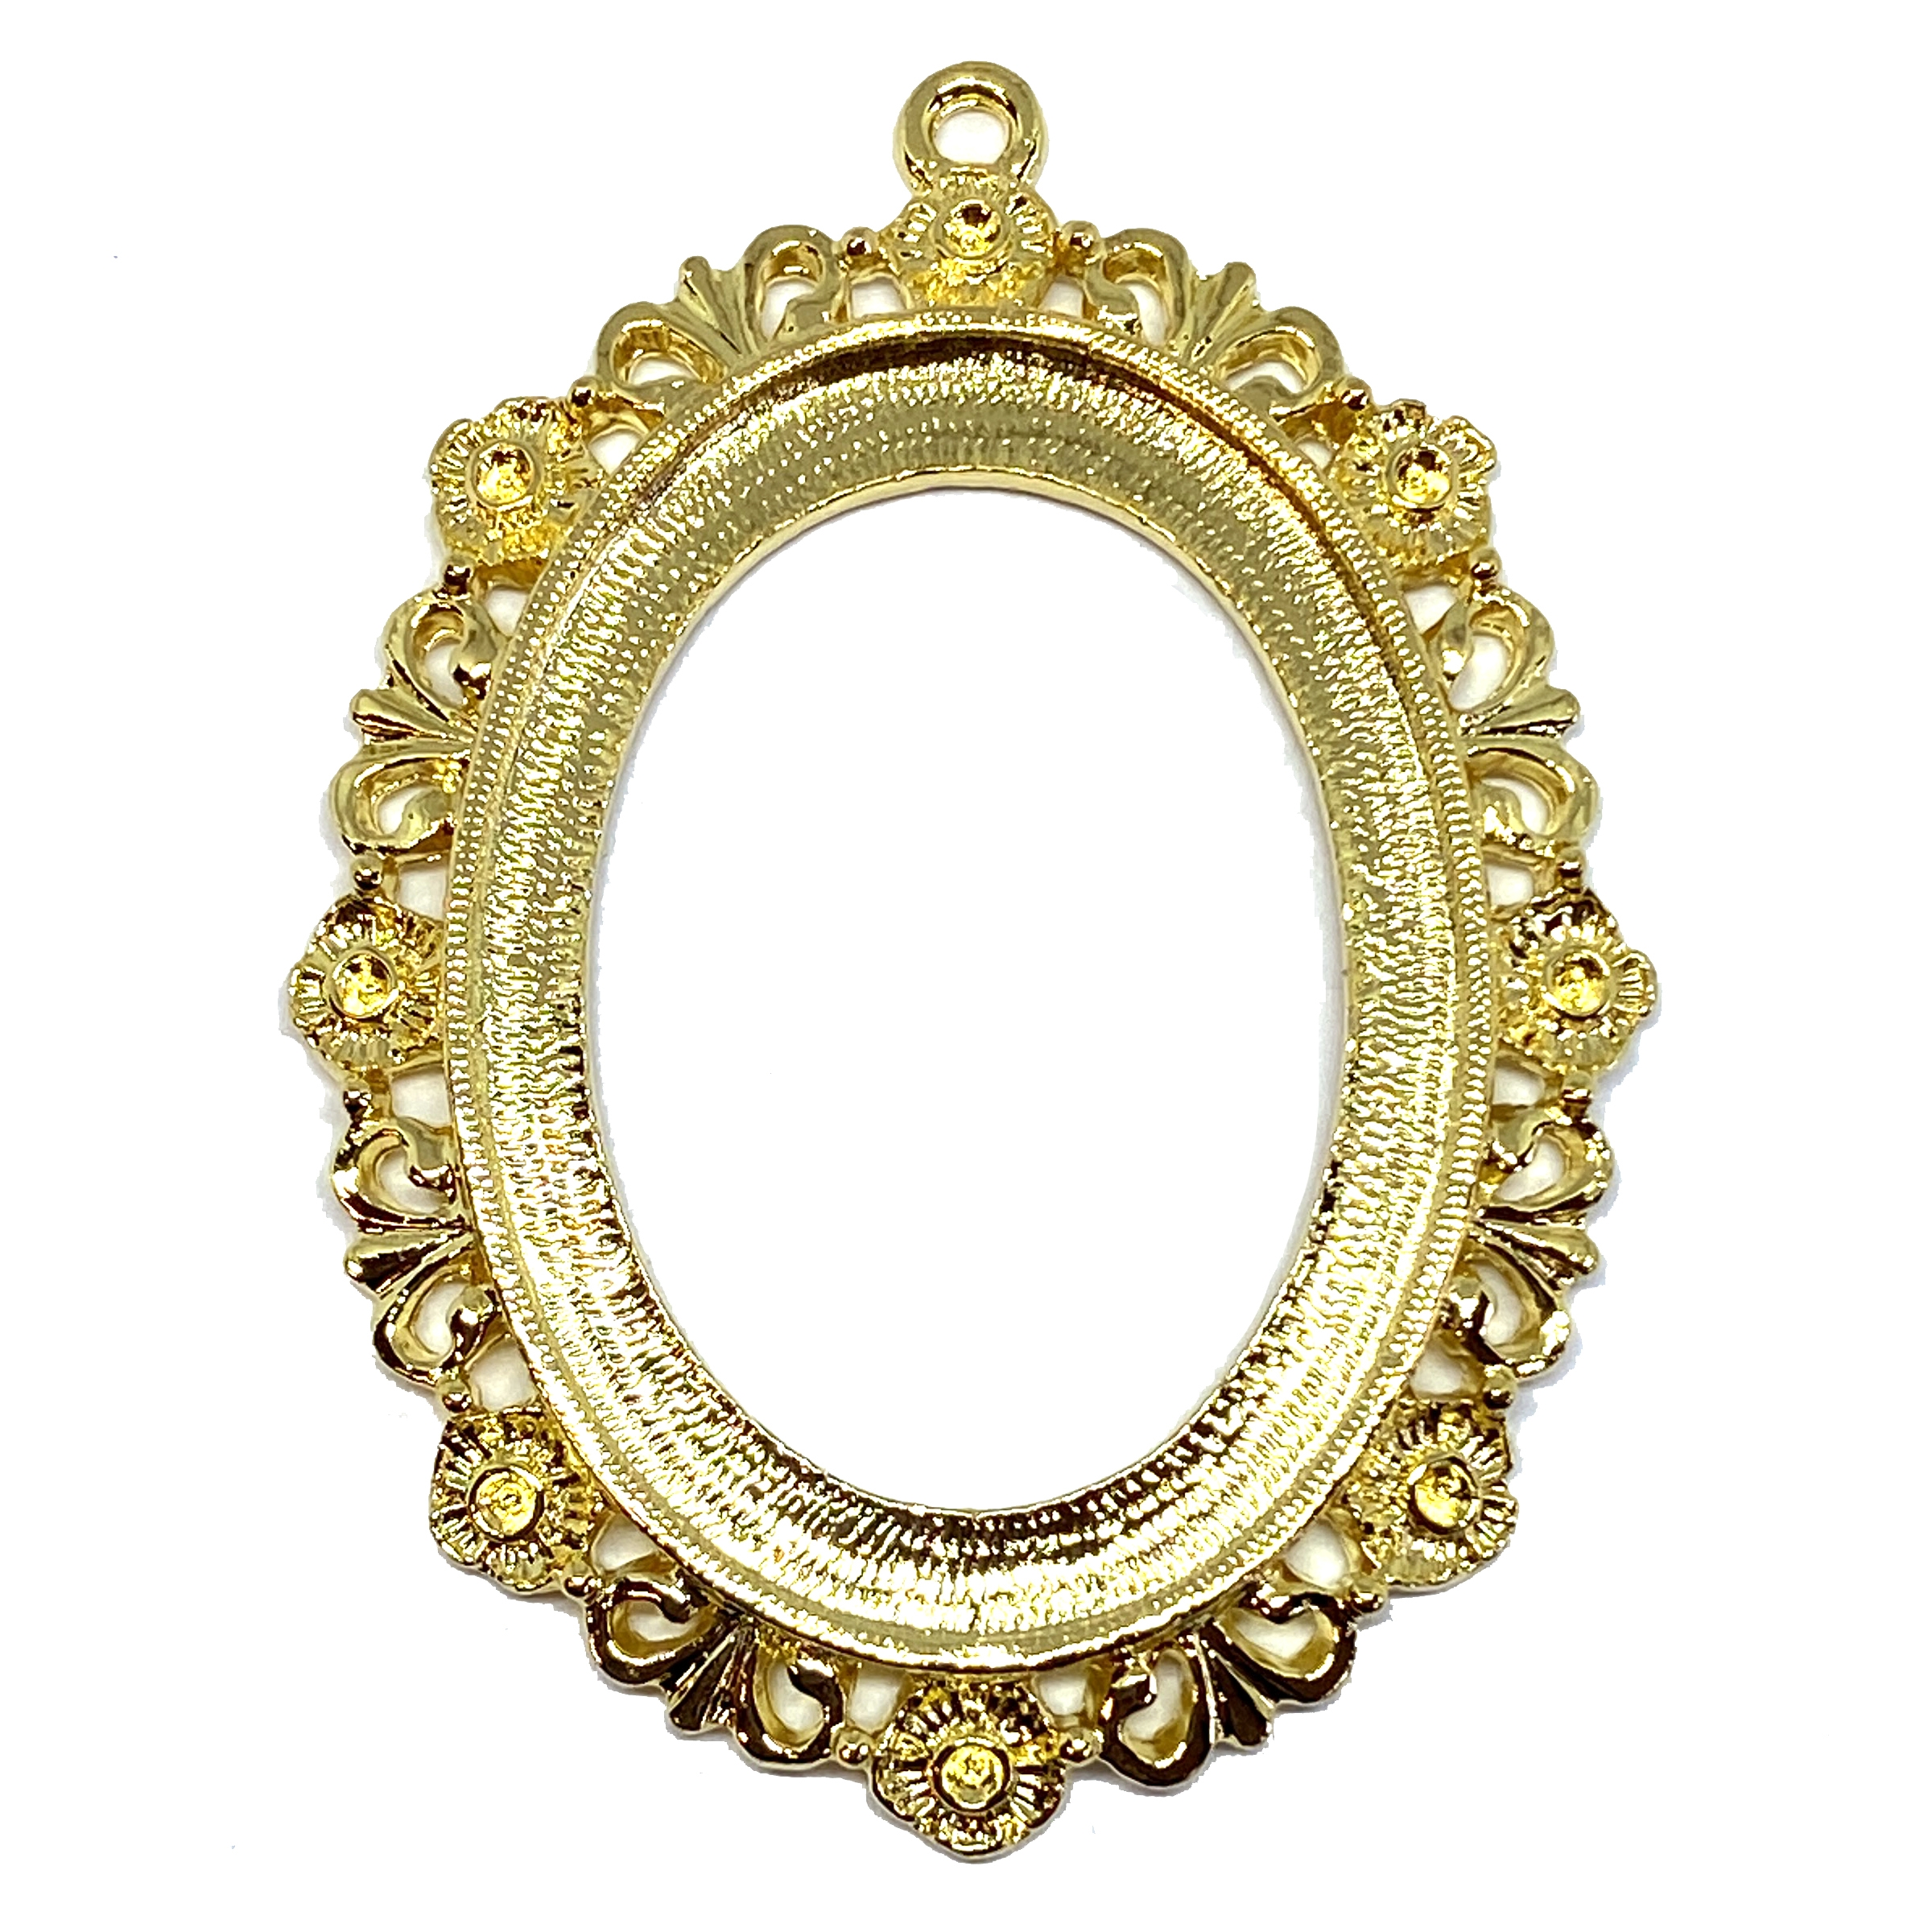 22K gold finish cameo mount, 40x30mm mount, Victorian, B'sue by 1928, lead free pewter, pewter castings, cast jewelry parts, vintage, cameo mount, polished pewter, plated jewelry castings, made in the USA, 1928 Jewelry, B'sue Boutiques, 01632